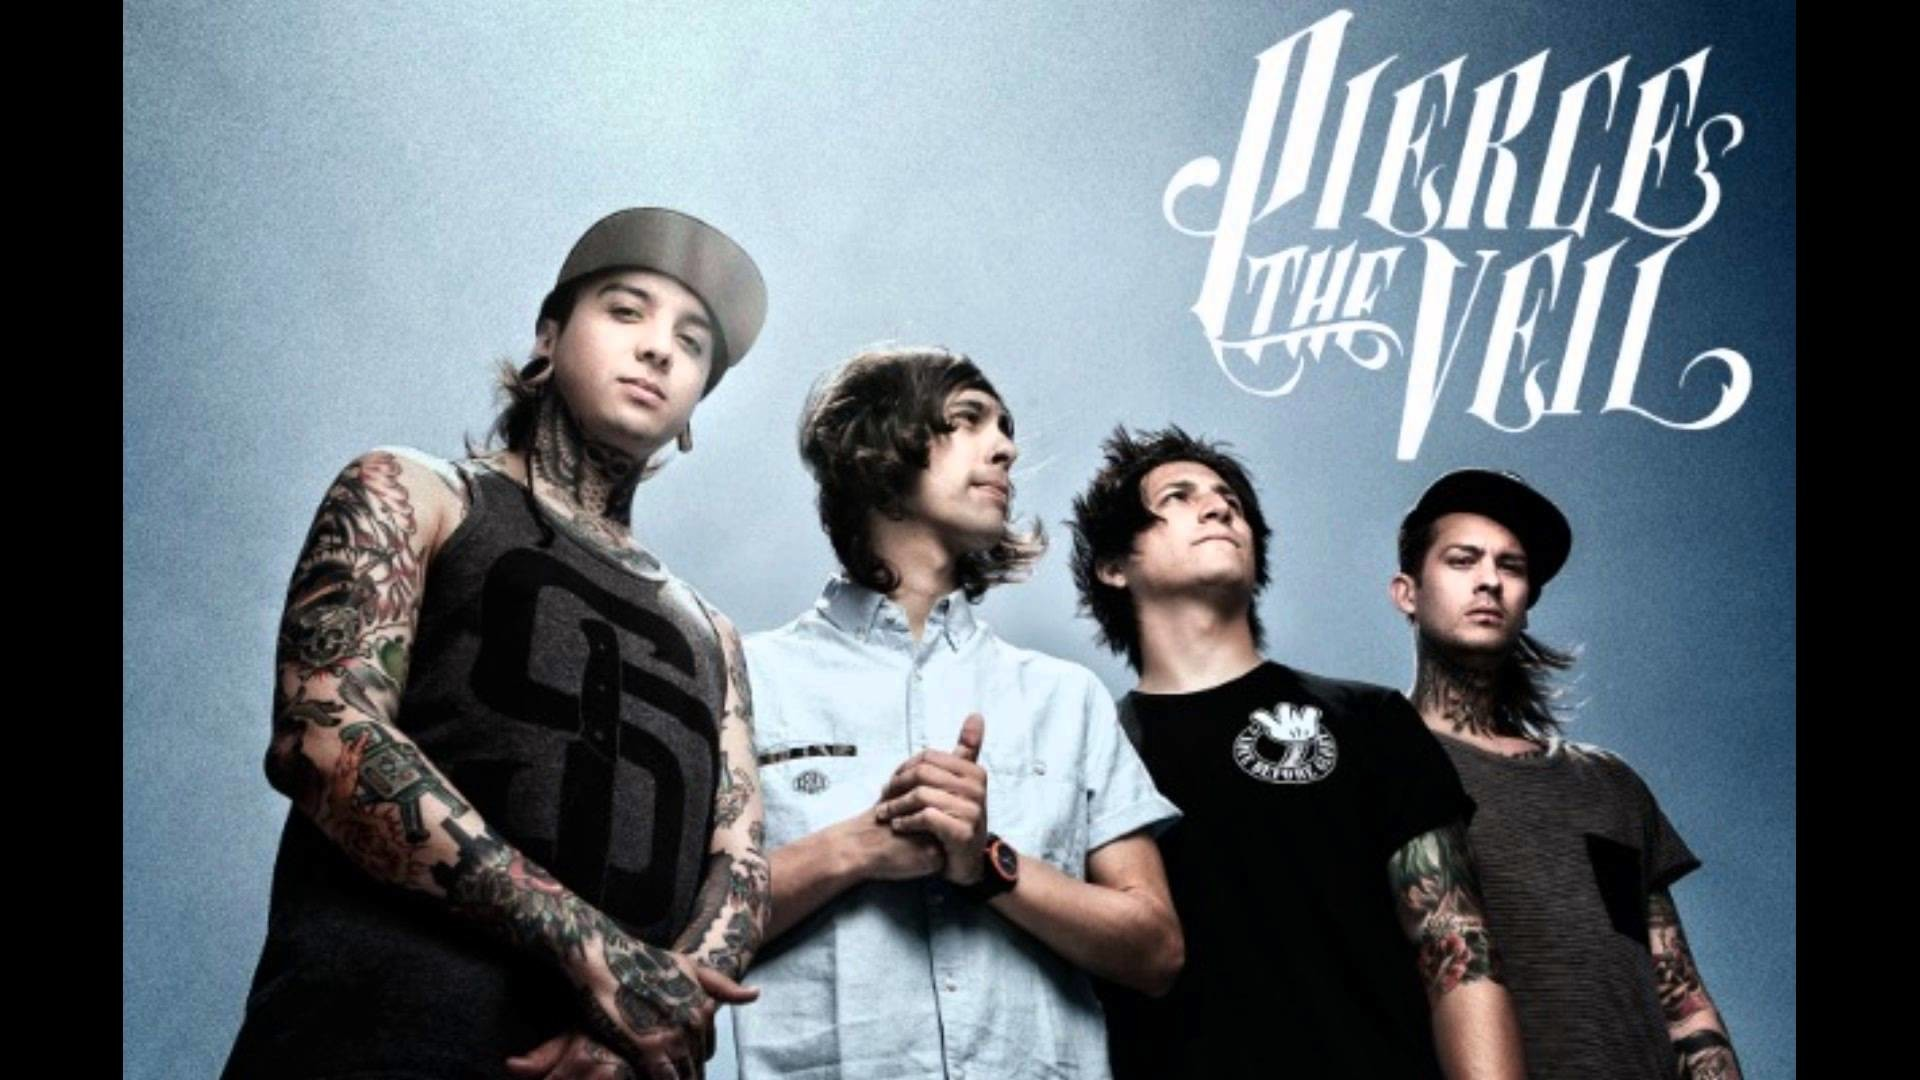 The Devil Wears Prada Iphone Wallpaper Pierce The Veil Wallpapers 80 Images